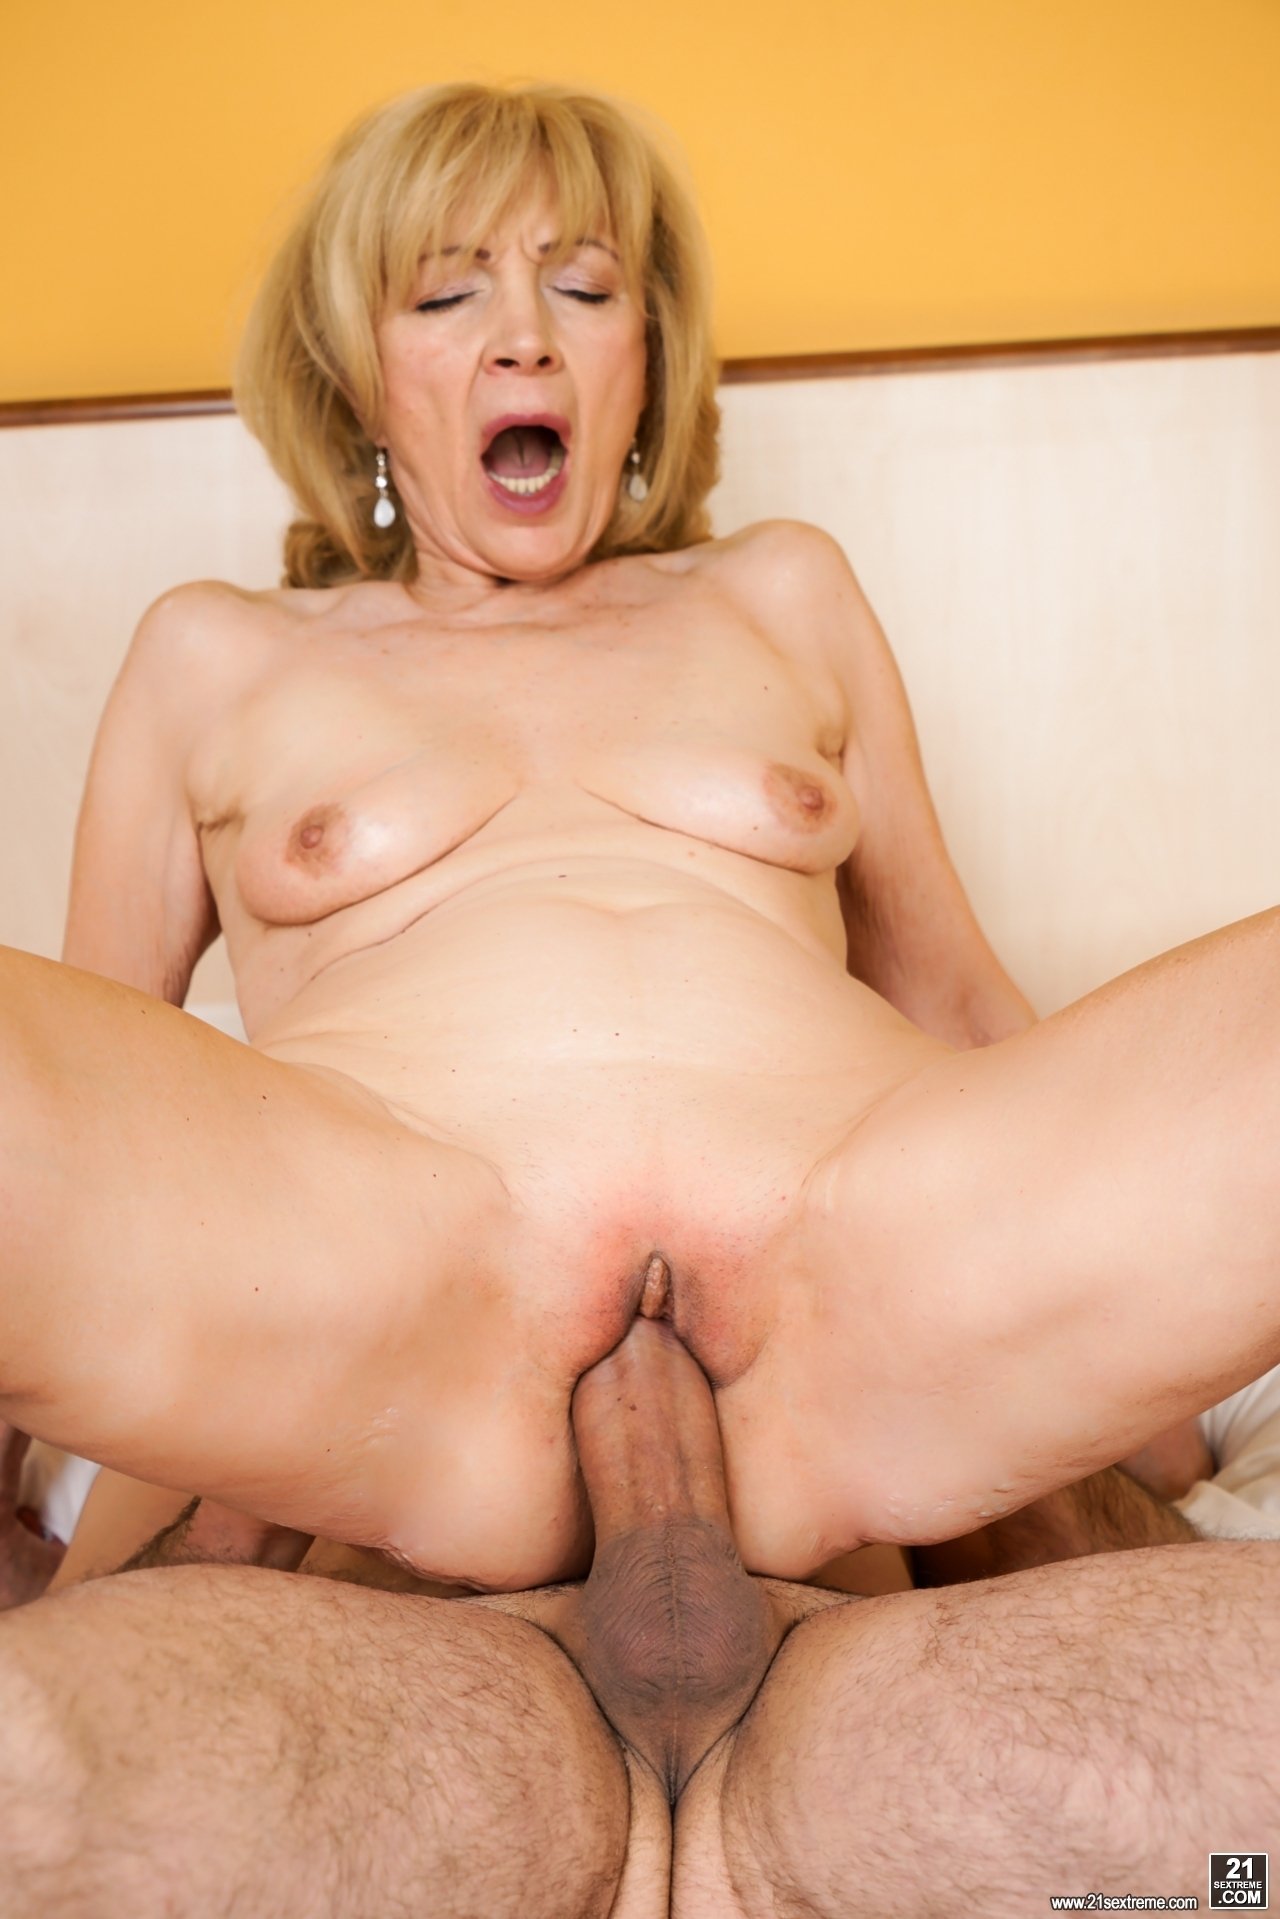 wife begs for other mans cock